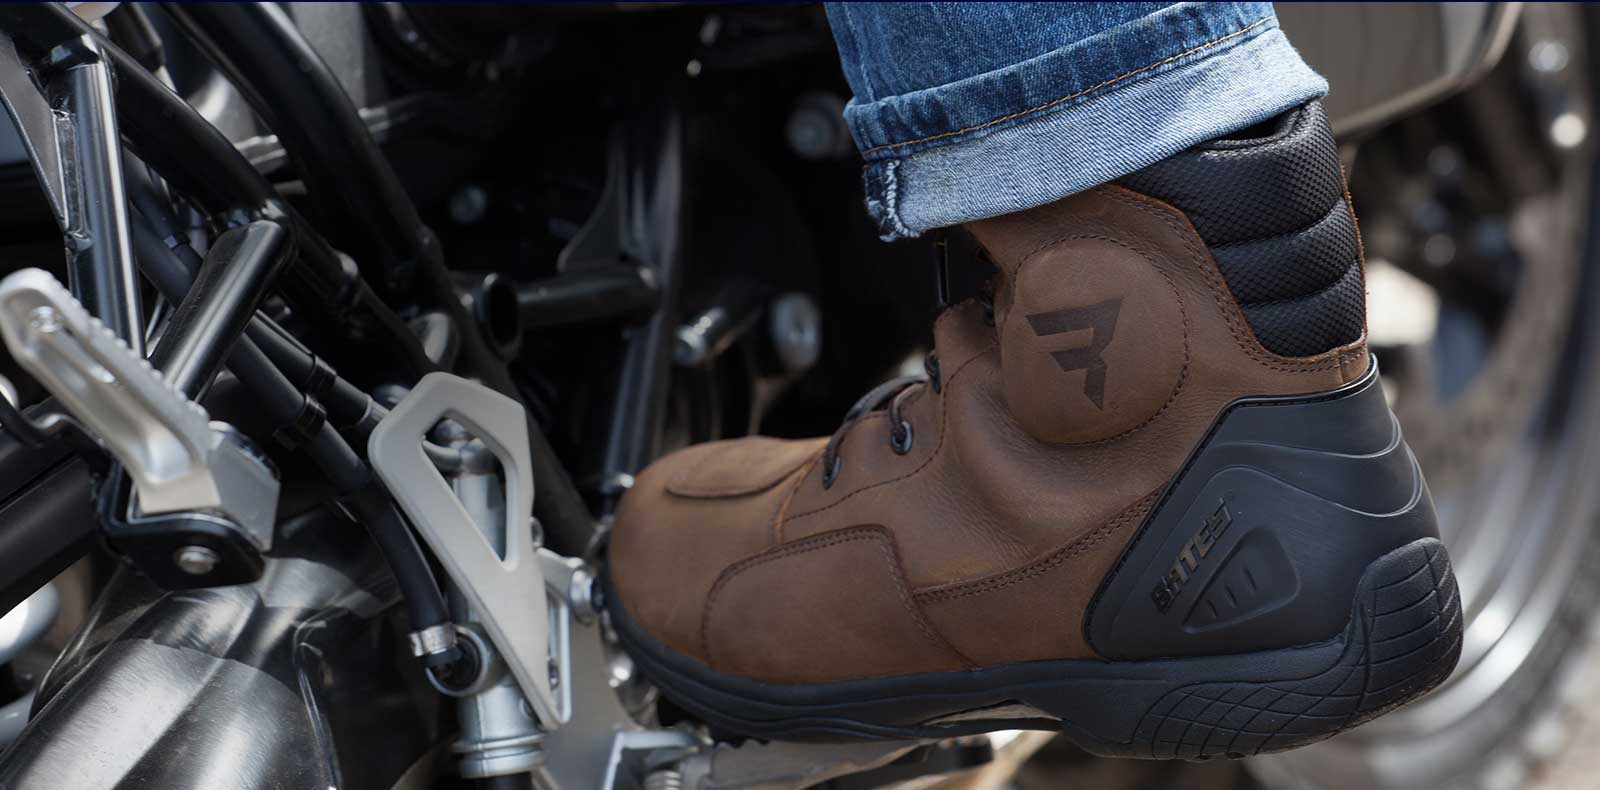 aea4f5a97eb Motorcycle Touring Boots & Power Sports Footwear | Bates